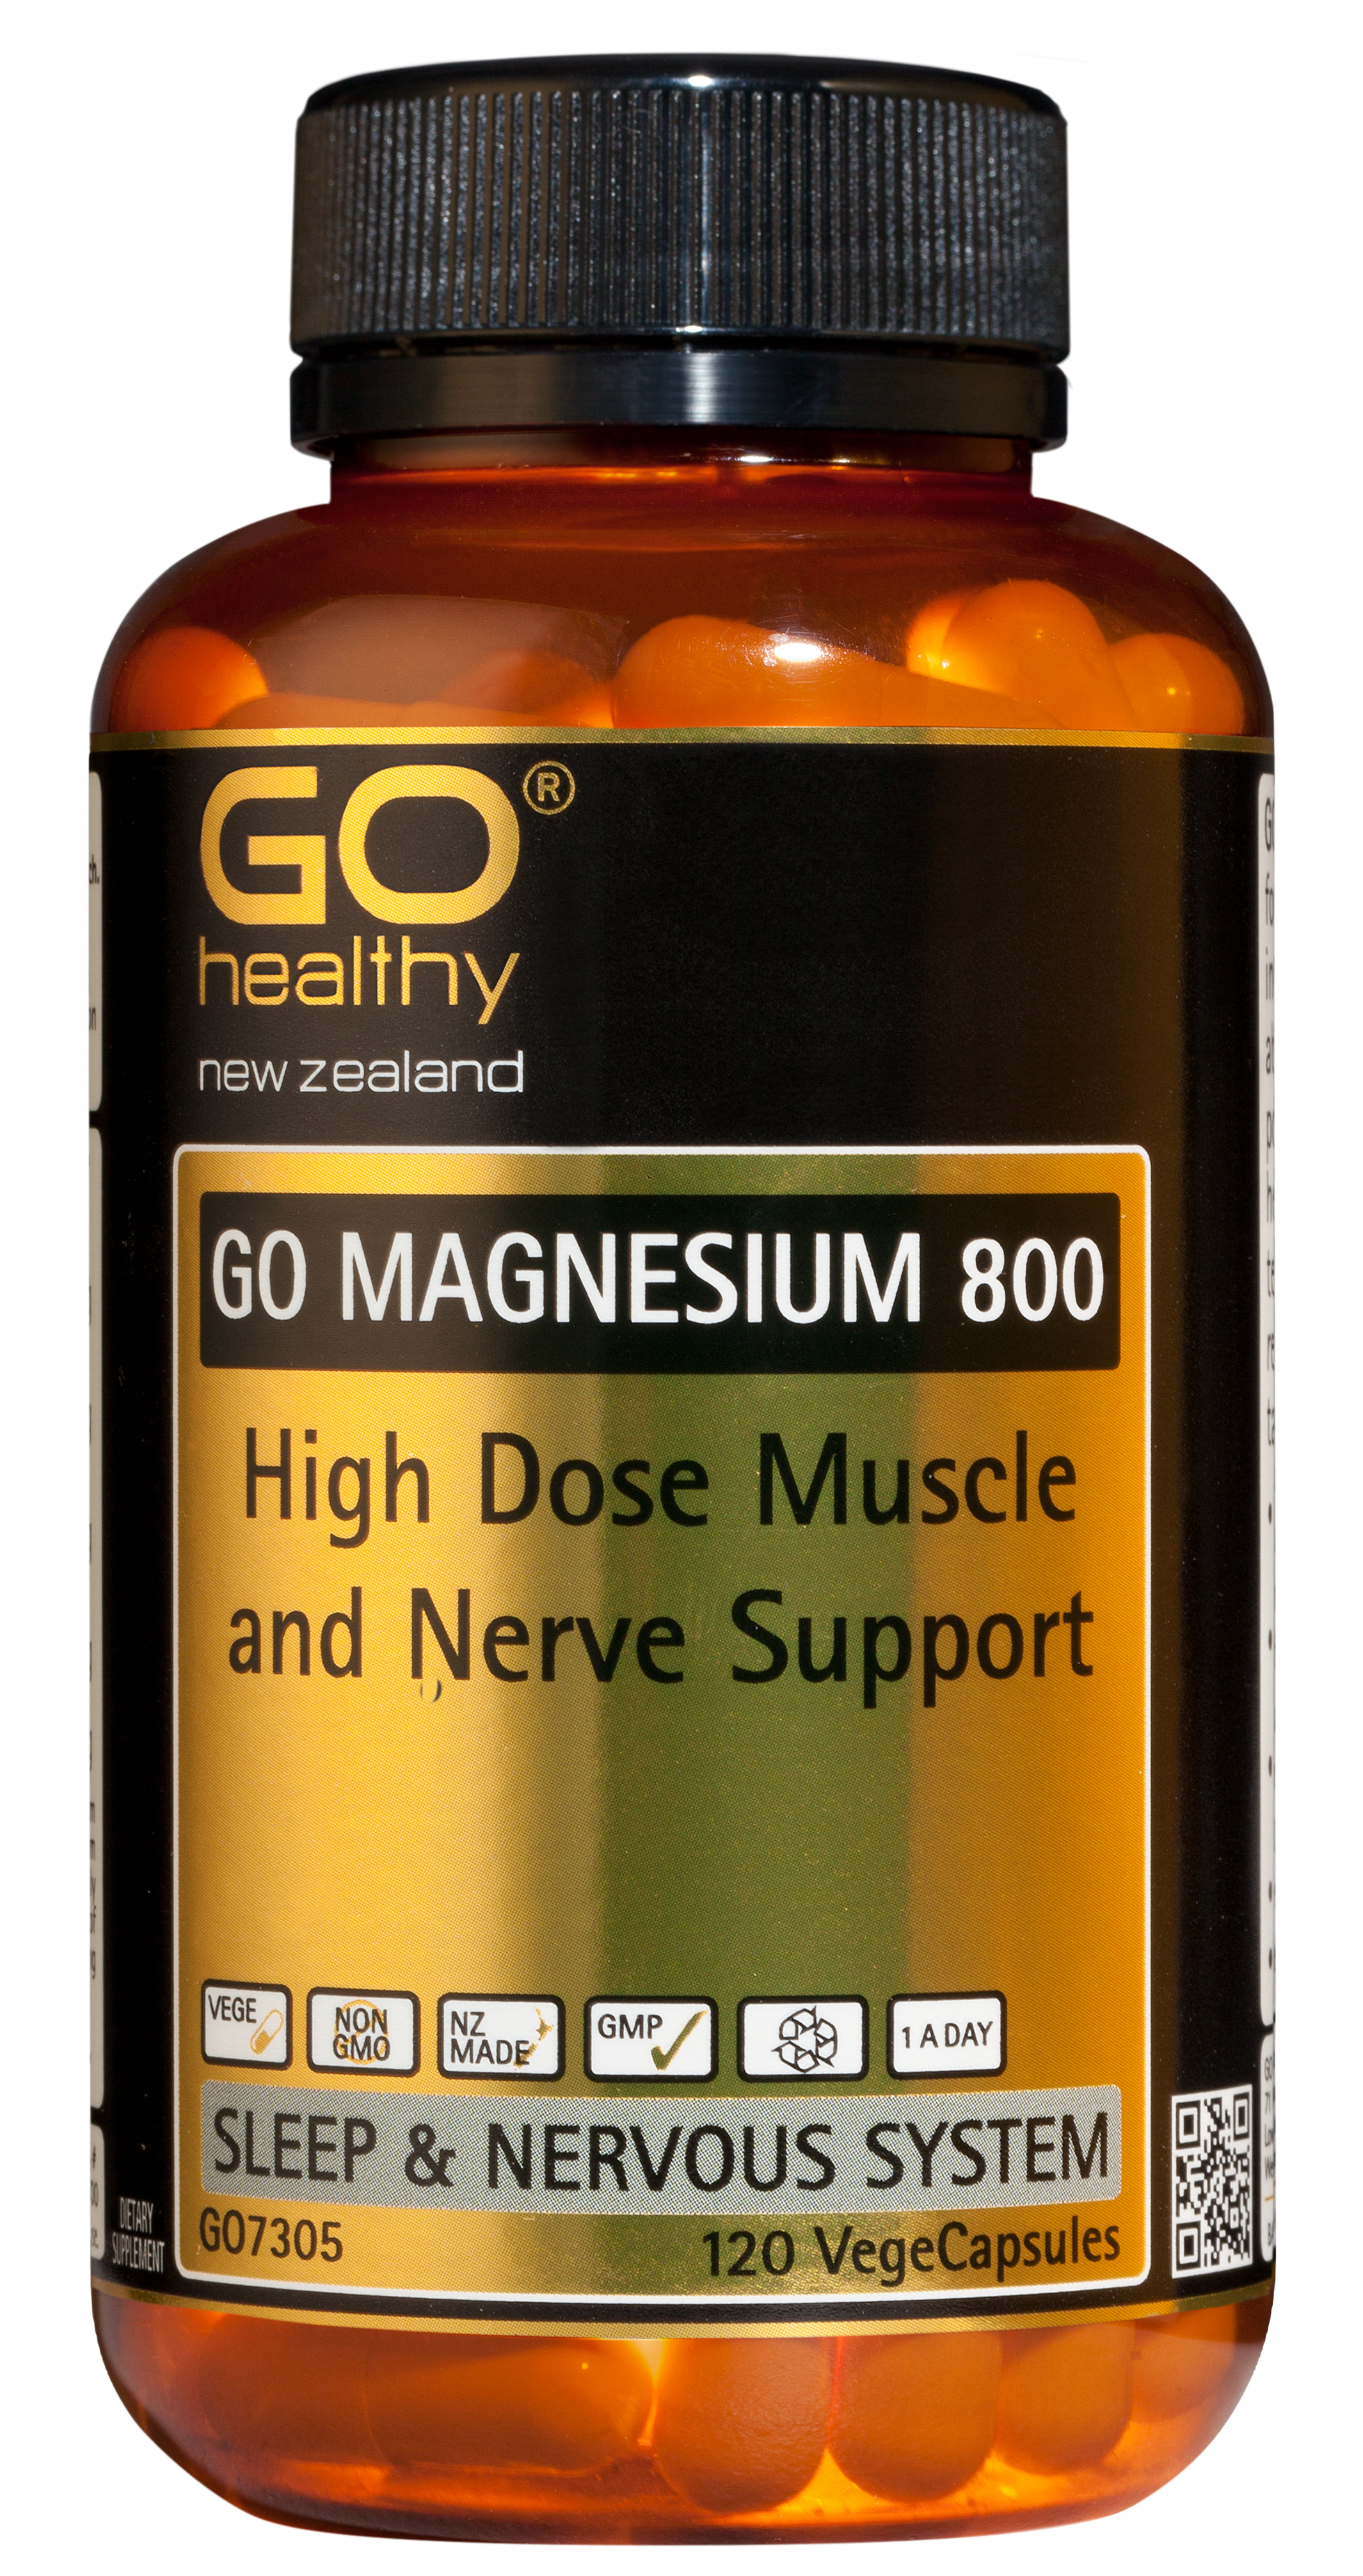 GO Healthy Magnesium 800 120 VegeCaps